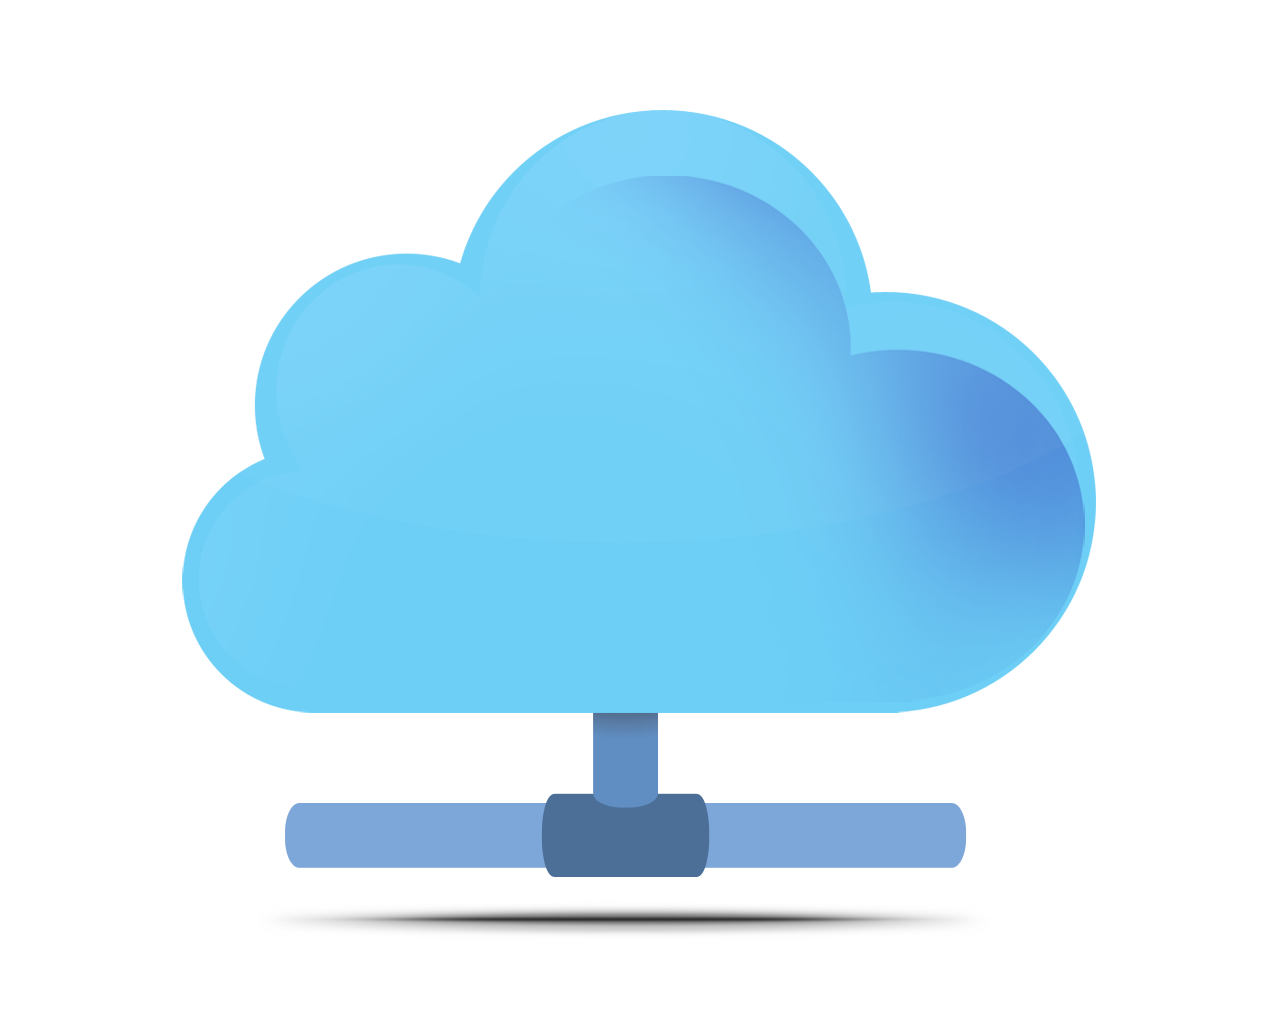 Transparent Png Cloud 12862 Free Icons And Png Backgrounds